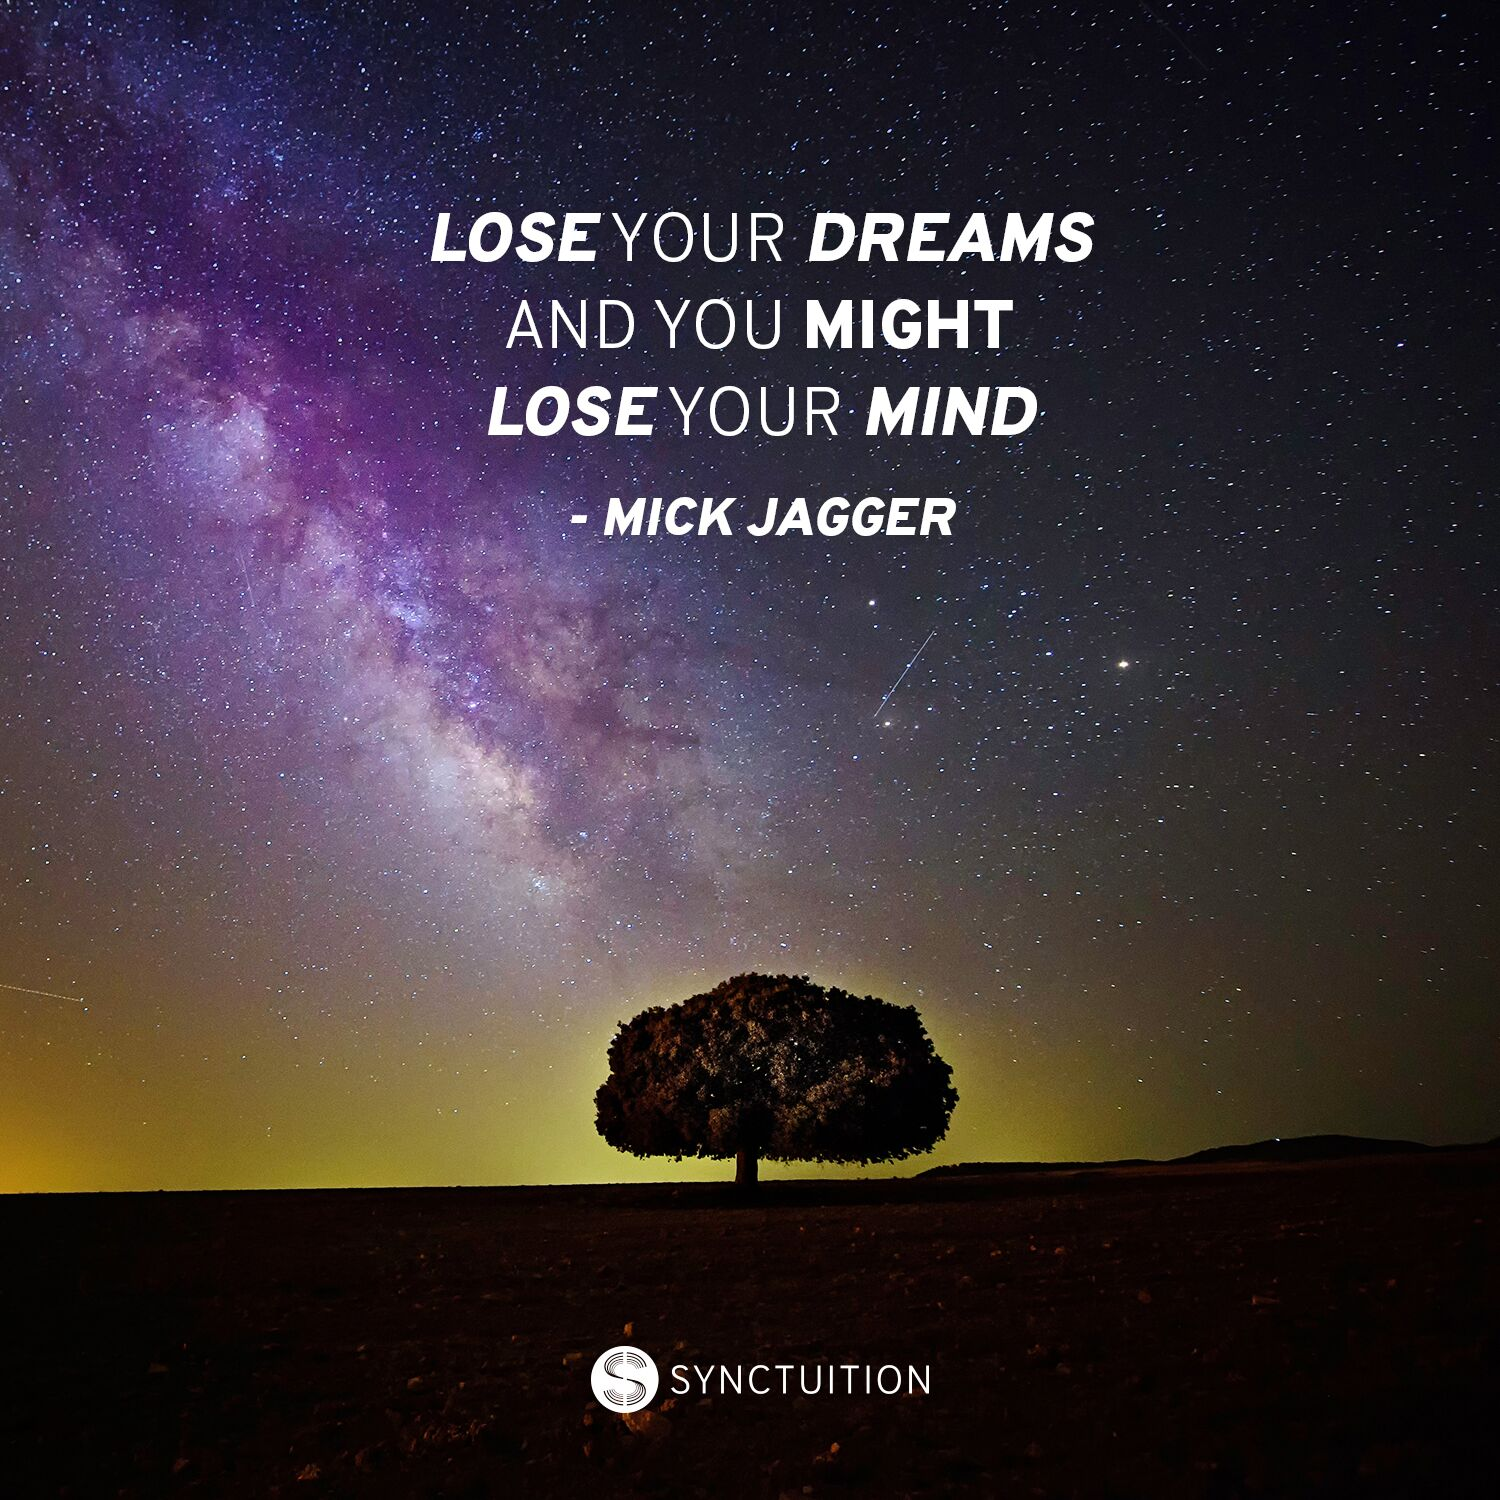 Quote on dreams by Mick Jagger